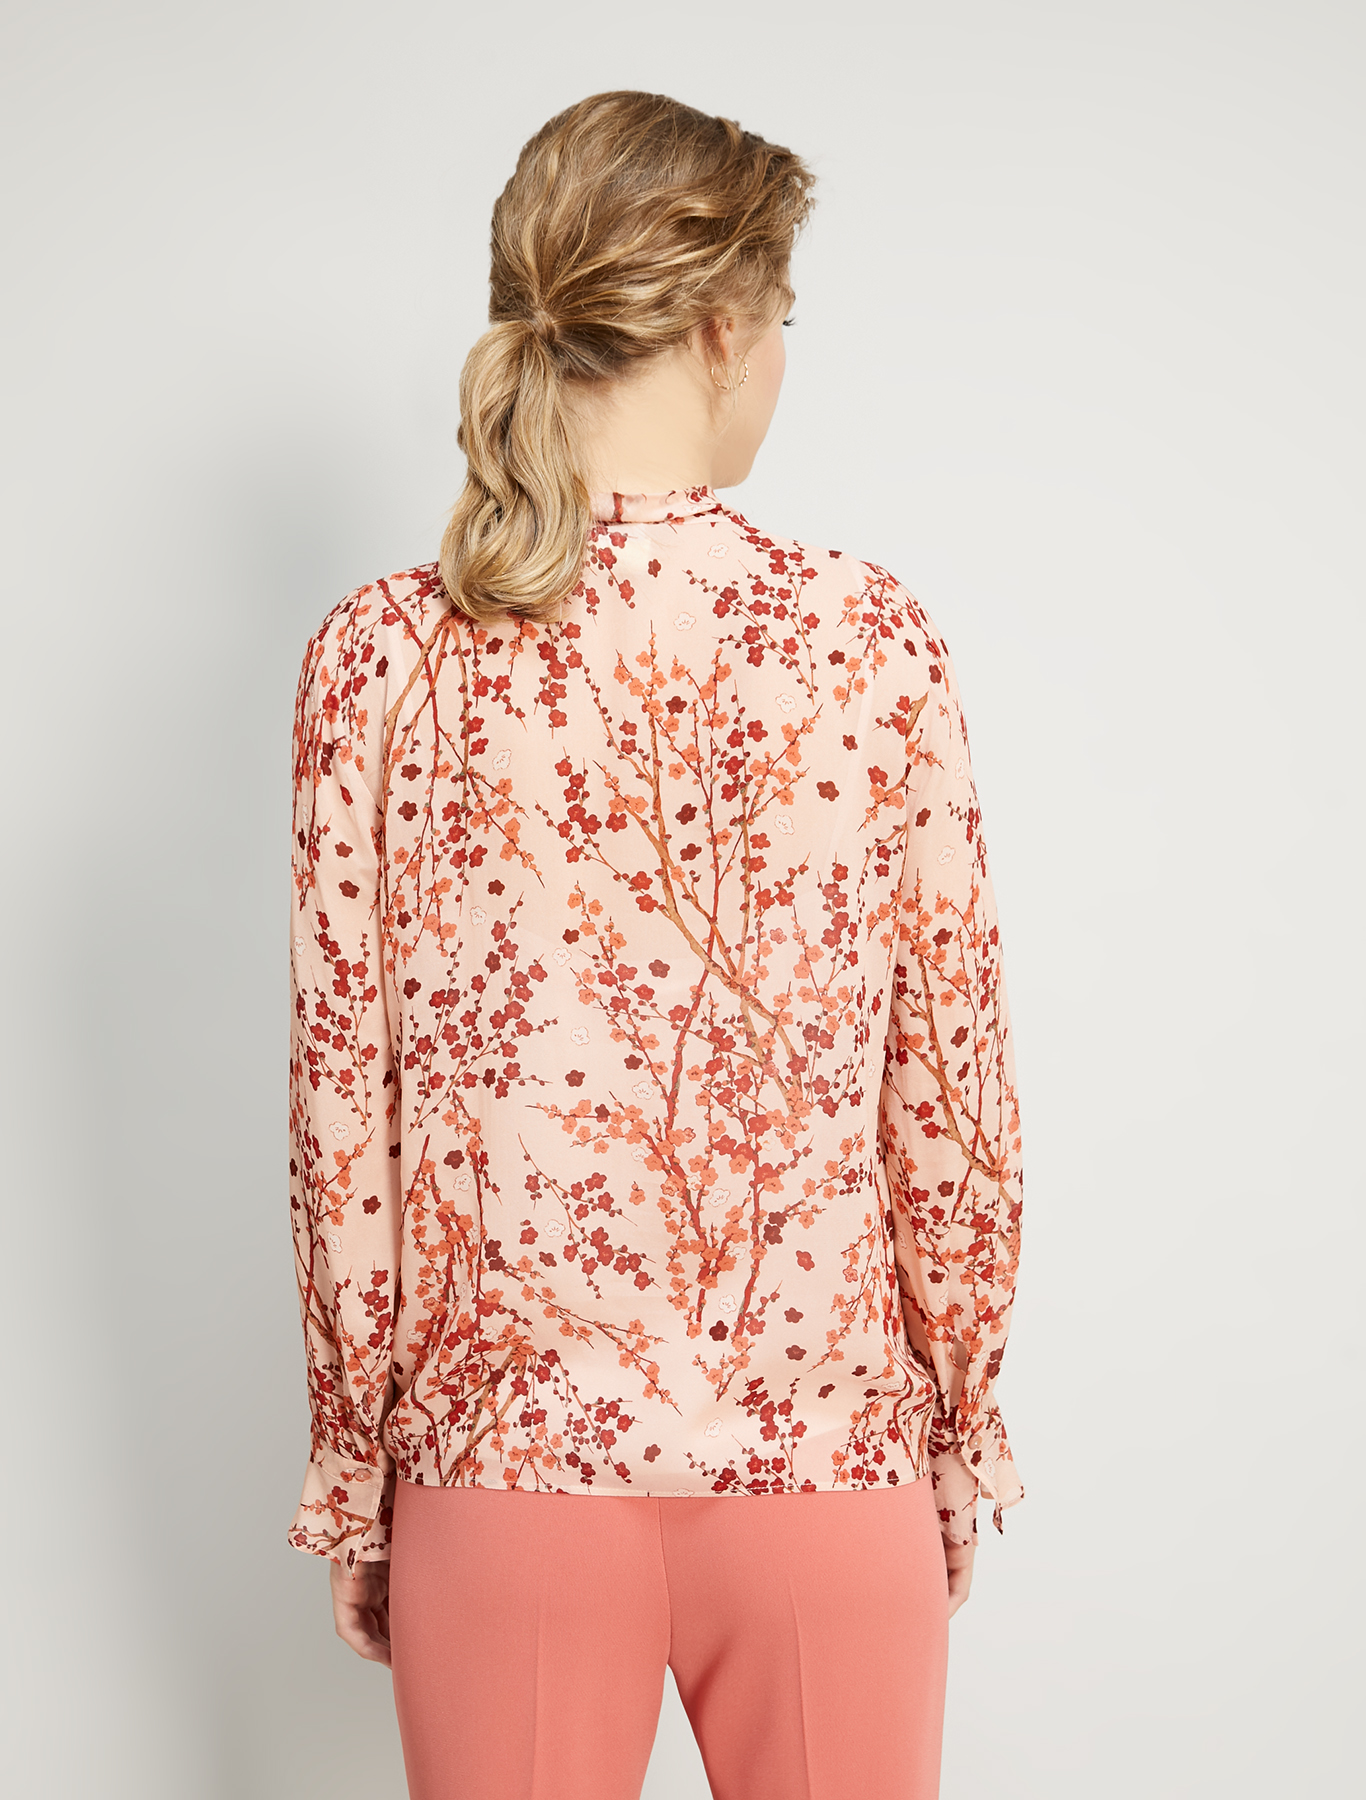 Blouse in floral georgette - rose pink pattern - pennyblack